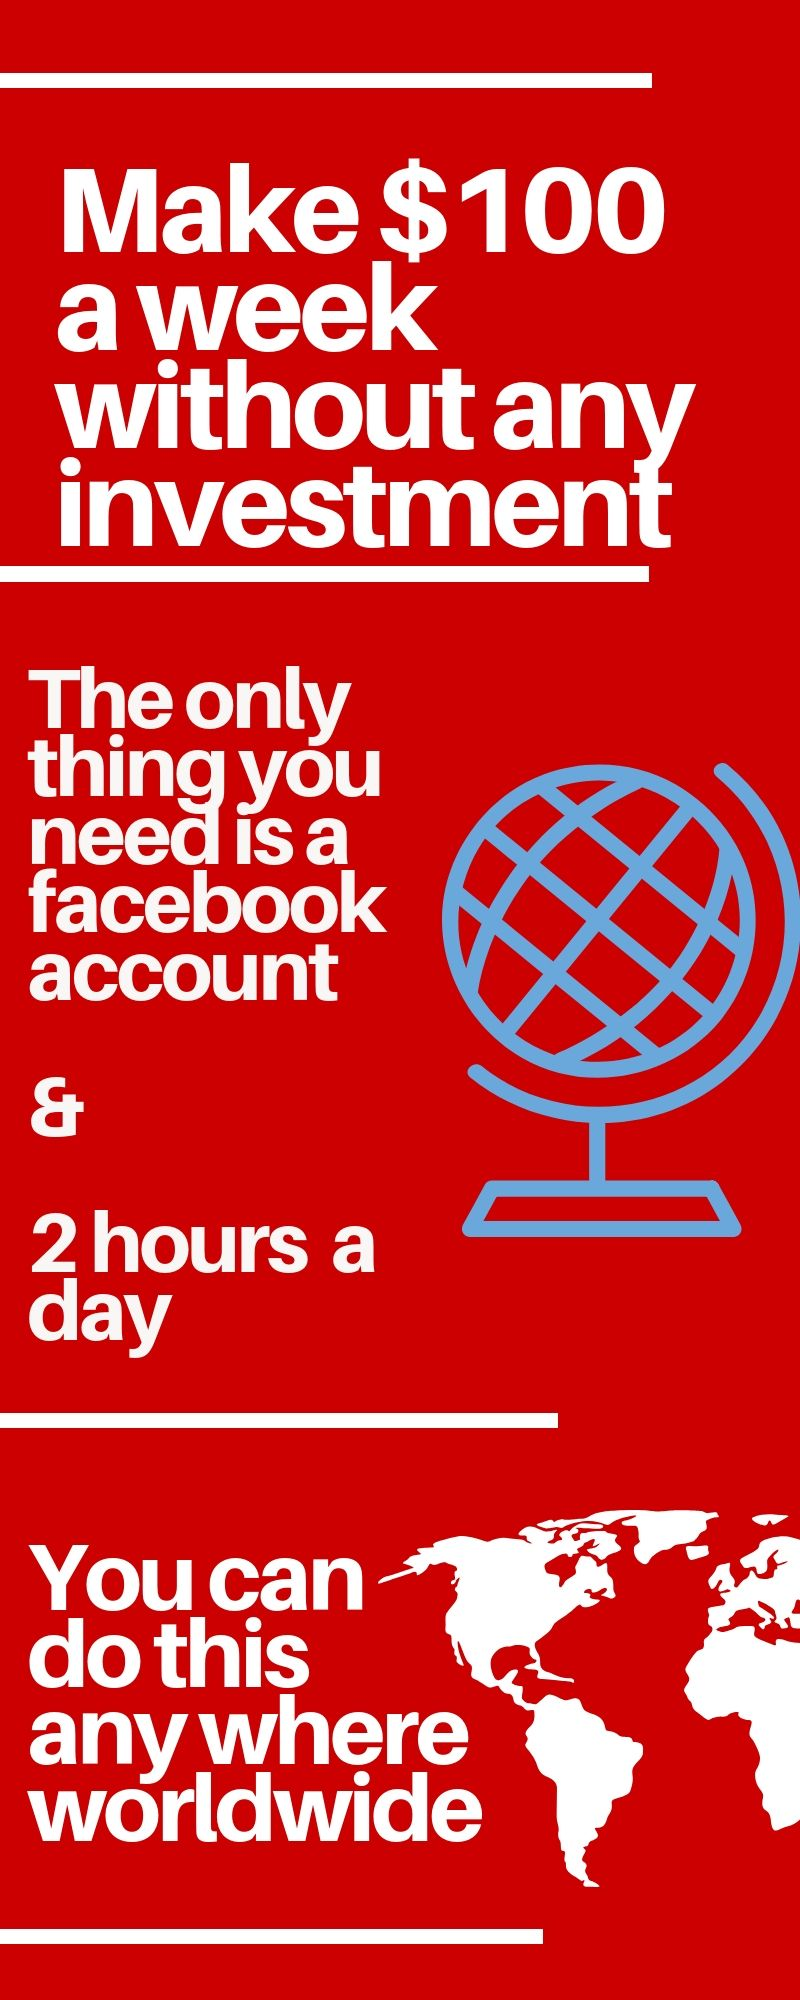 Do you have a Facebook account and 2 hours in a day to